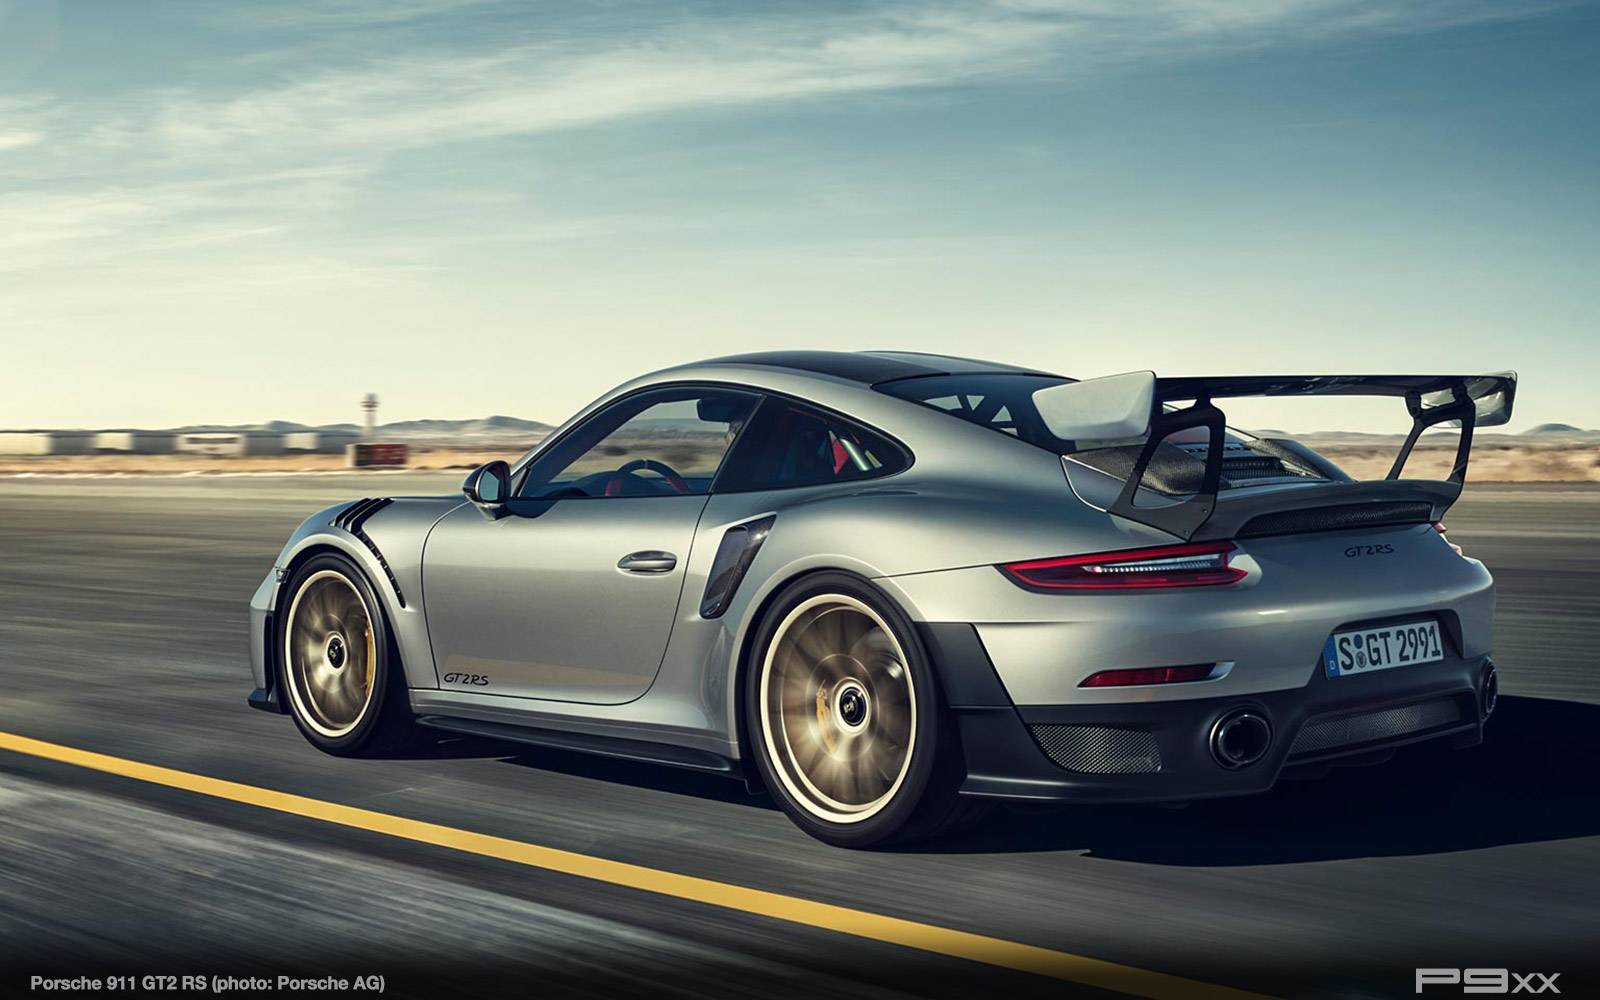 photo gallery porsche 911 gt2 rs type 991 2 p9xx. Black Bedroom Furniture Sets. Home Design Ideas